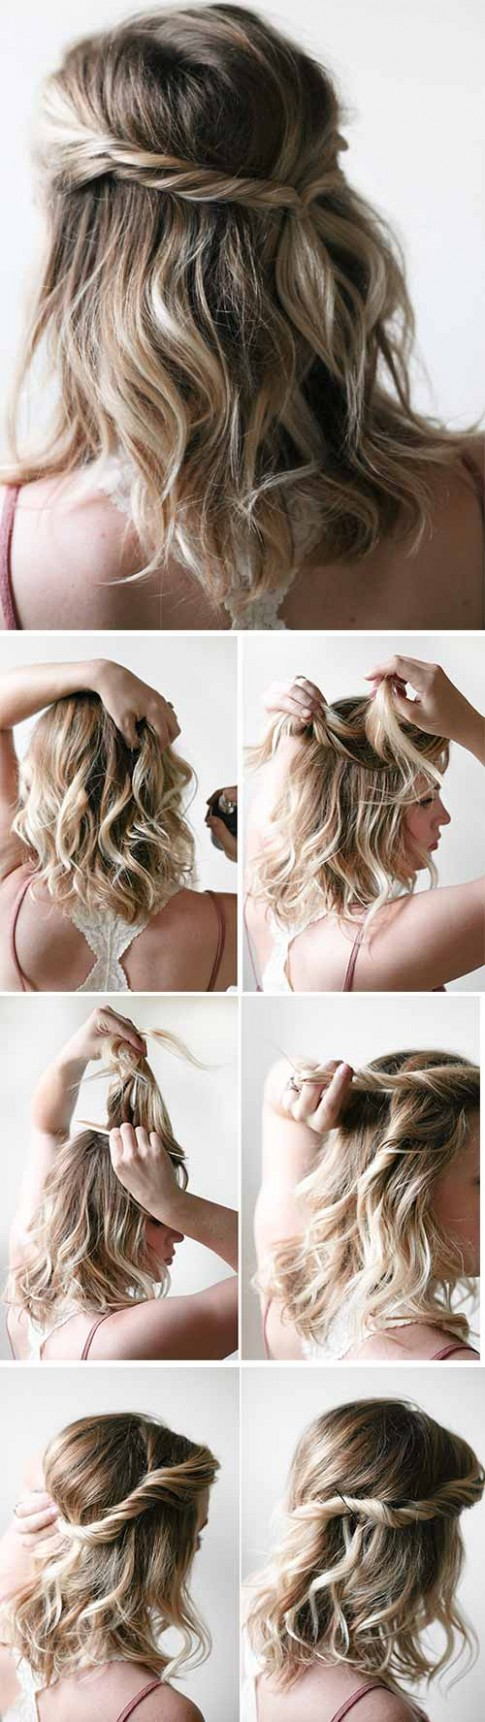 8 Incredible DIY Short Hairstyles A Step By Step Guide Quick Easy Hairstyles For Short Hair